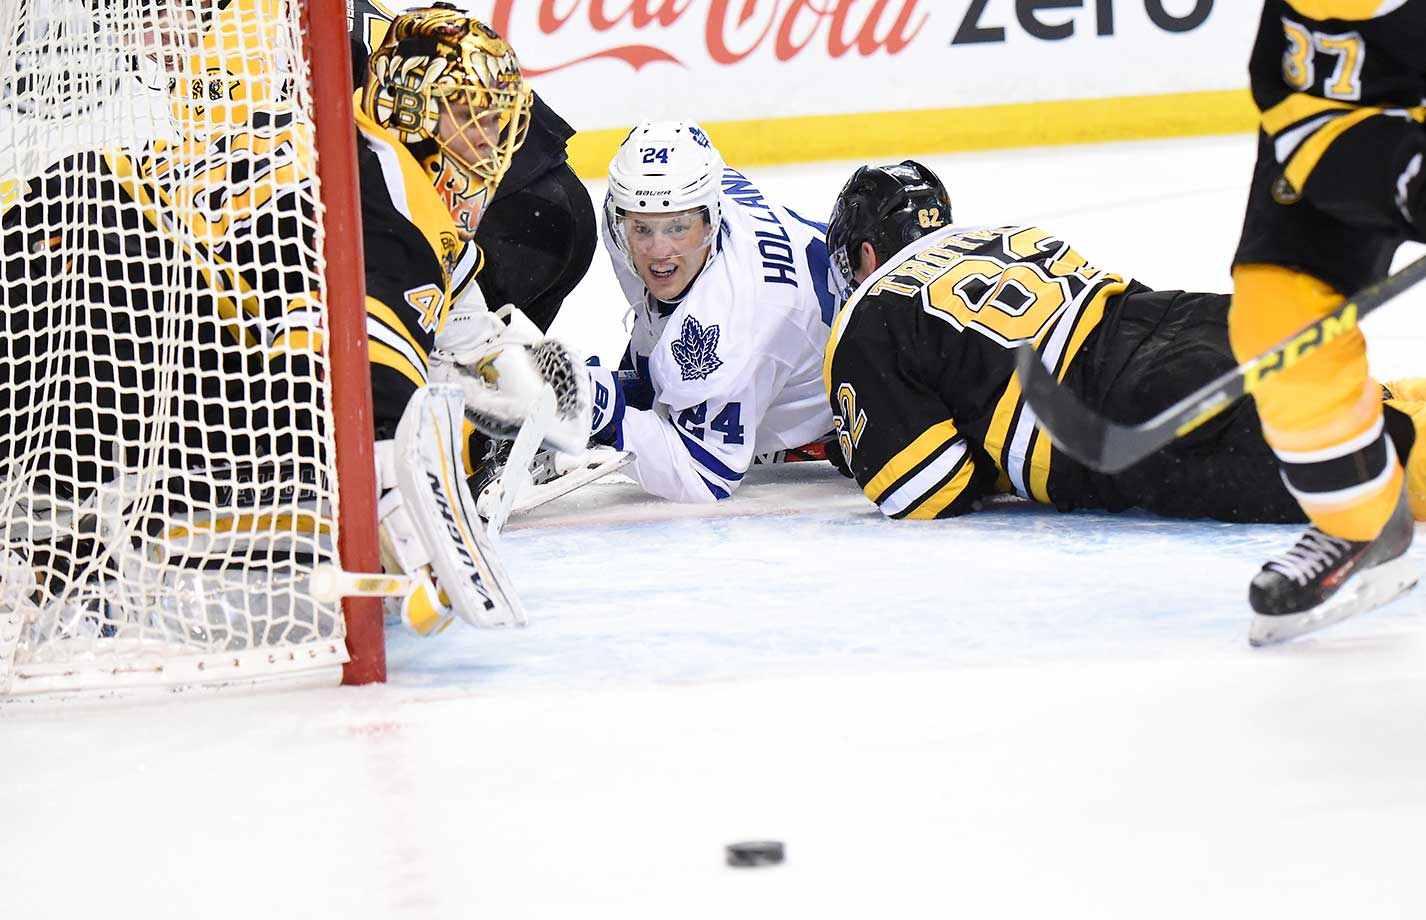 Peter Holland (24) of the Toronto Maple Leafs watches the loose puck against the Boston Bruins at the TD Garden in Boston.